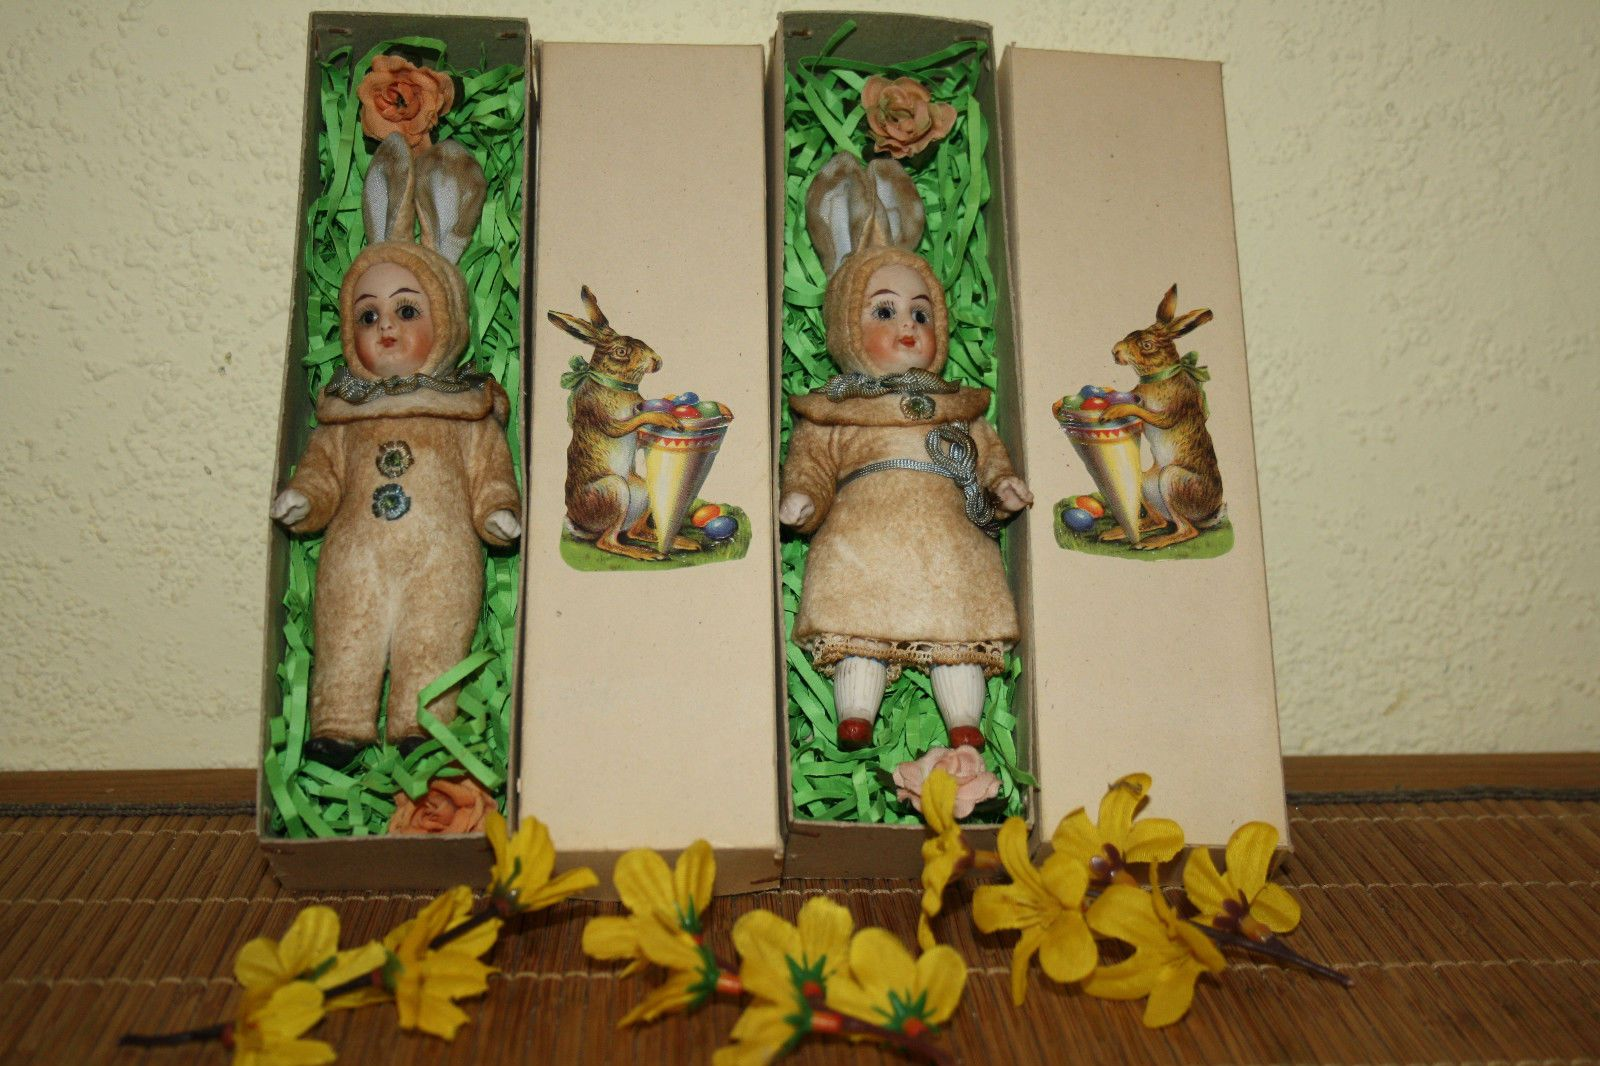 2 Easter Bunny dolls made of porcelain in a cardboard box